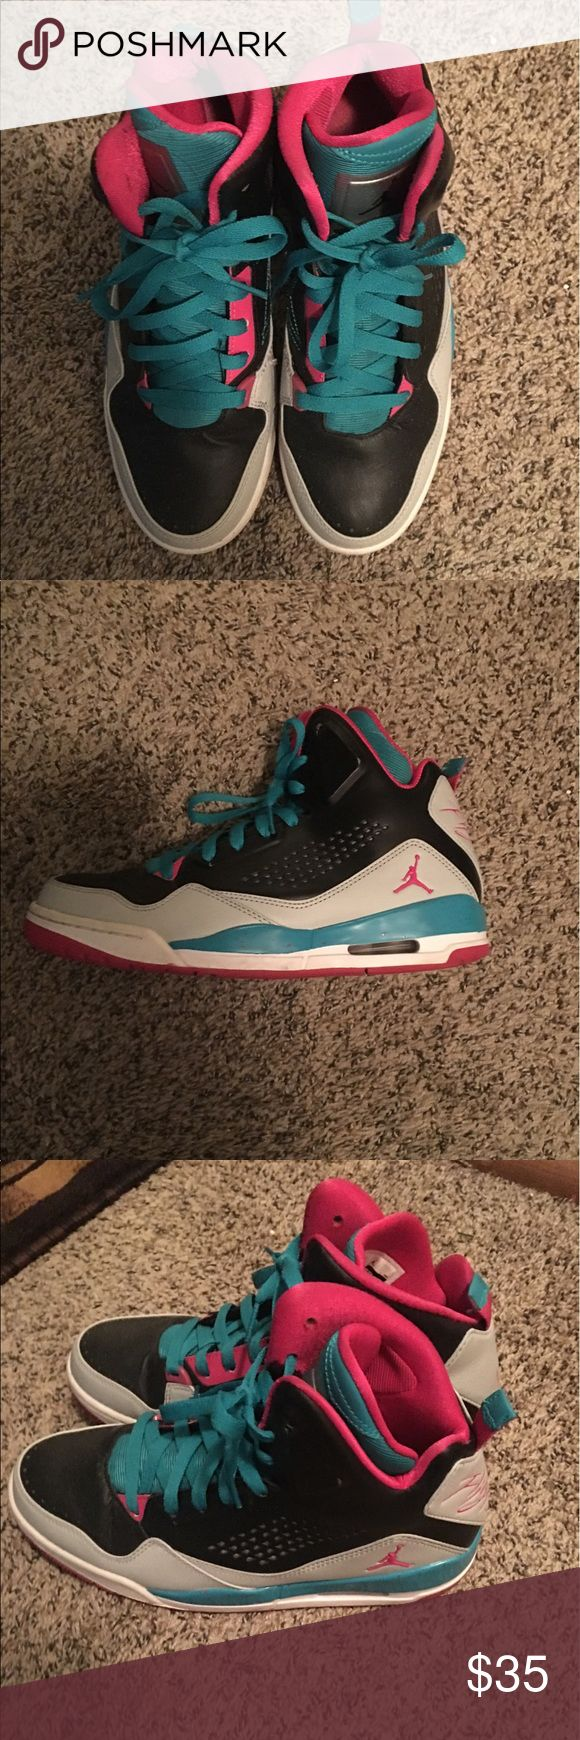 Jordan's high tops Teal and black EUC. Shoes Alway stored with newspaper inside to keep shape. Nike Shoes Athletic Shoes